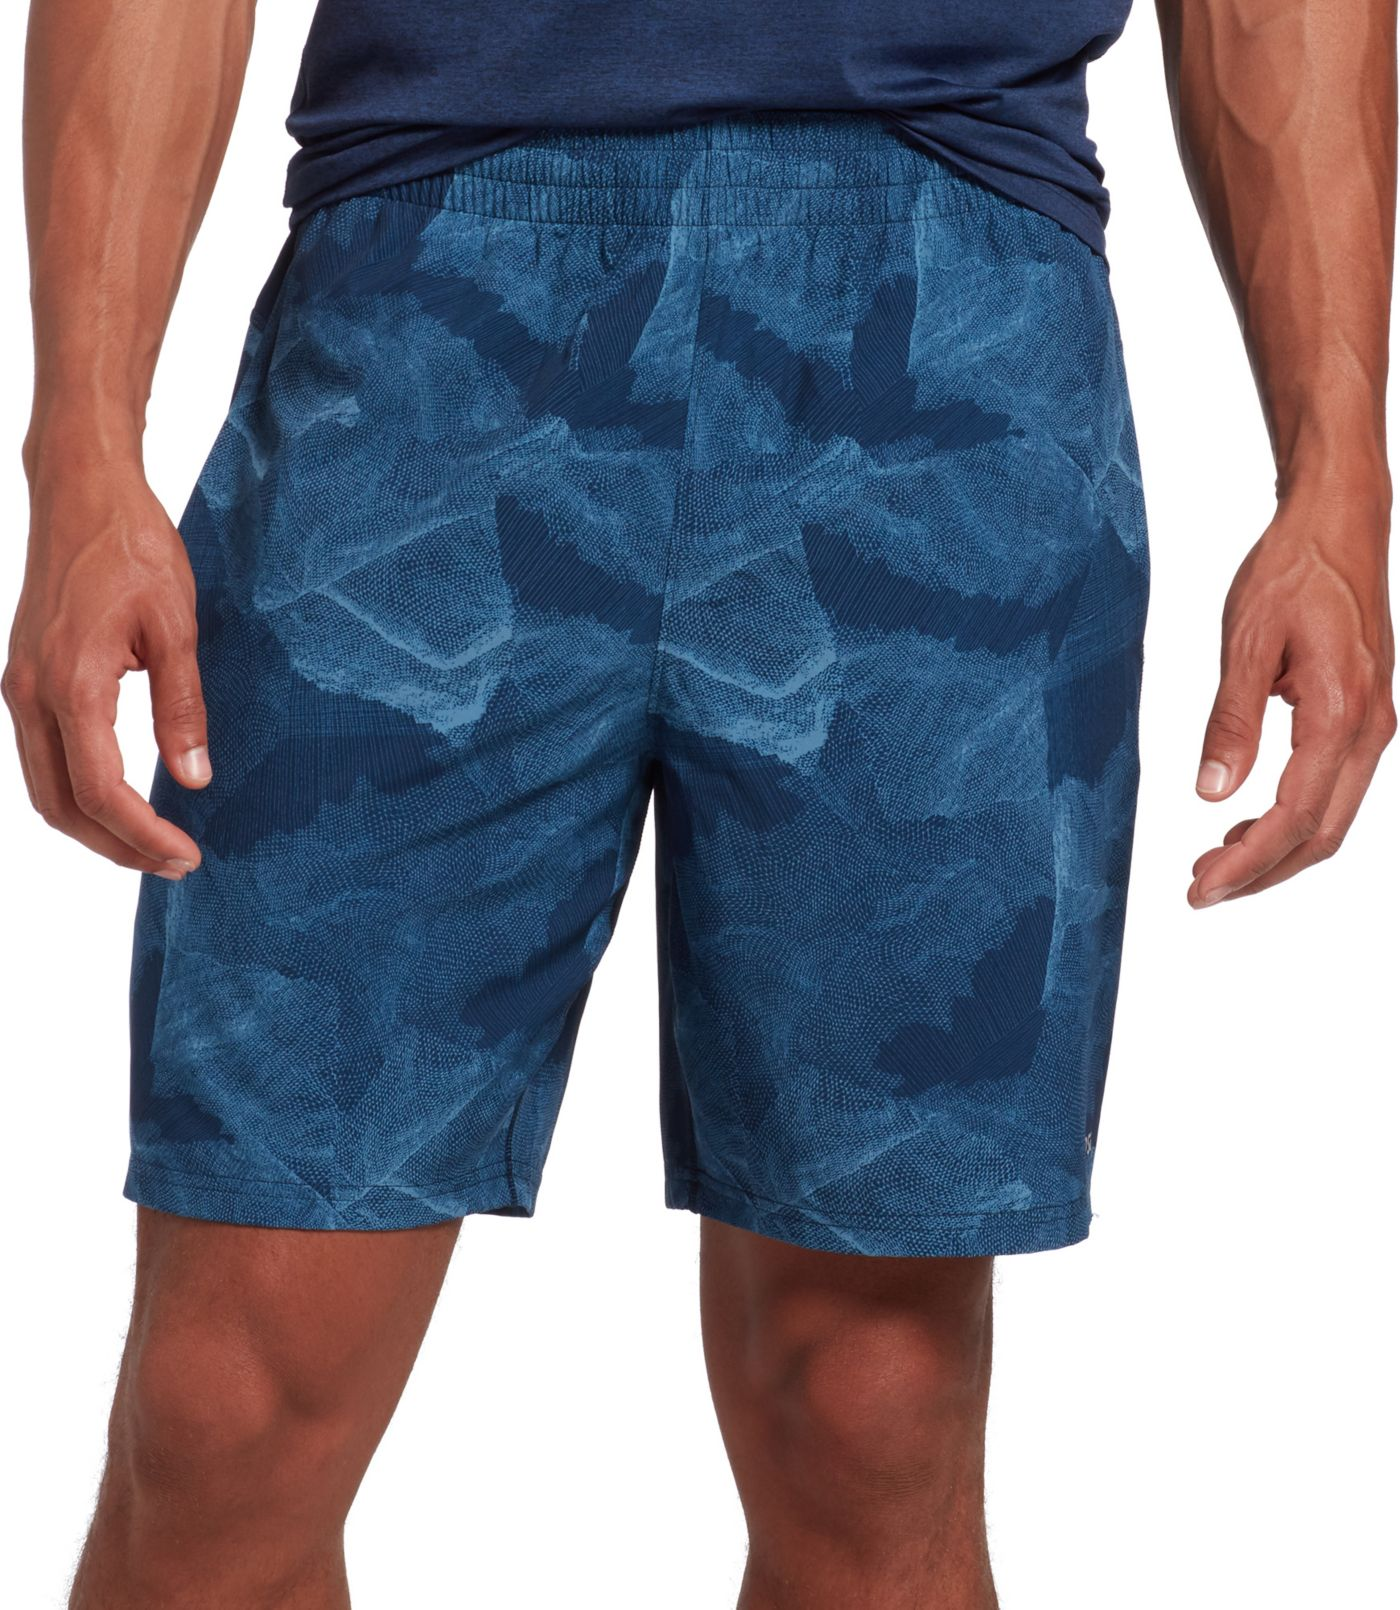 DSG Men's Woven Training Shorts